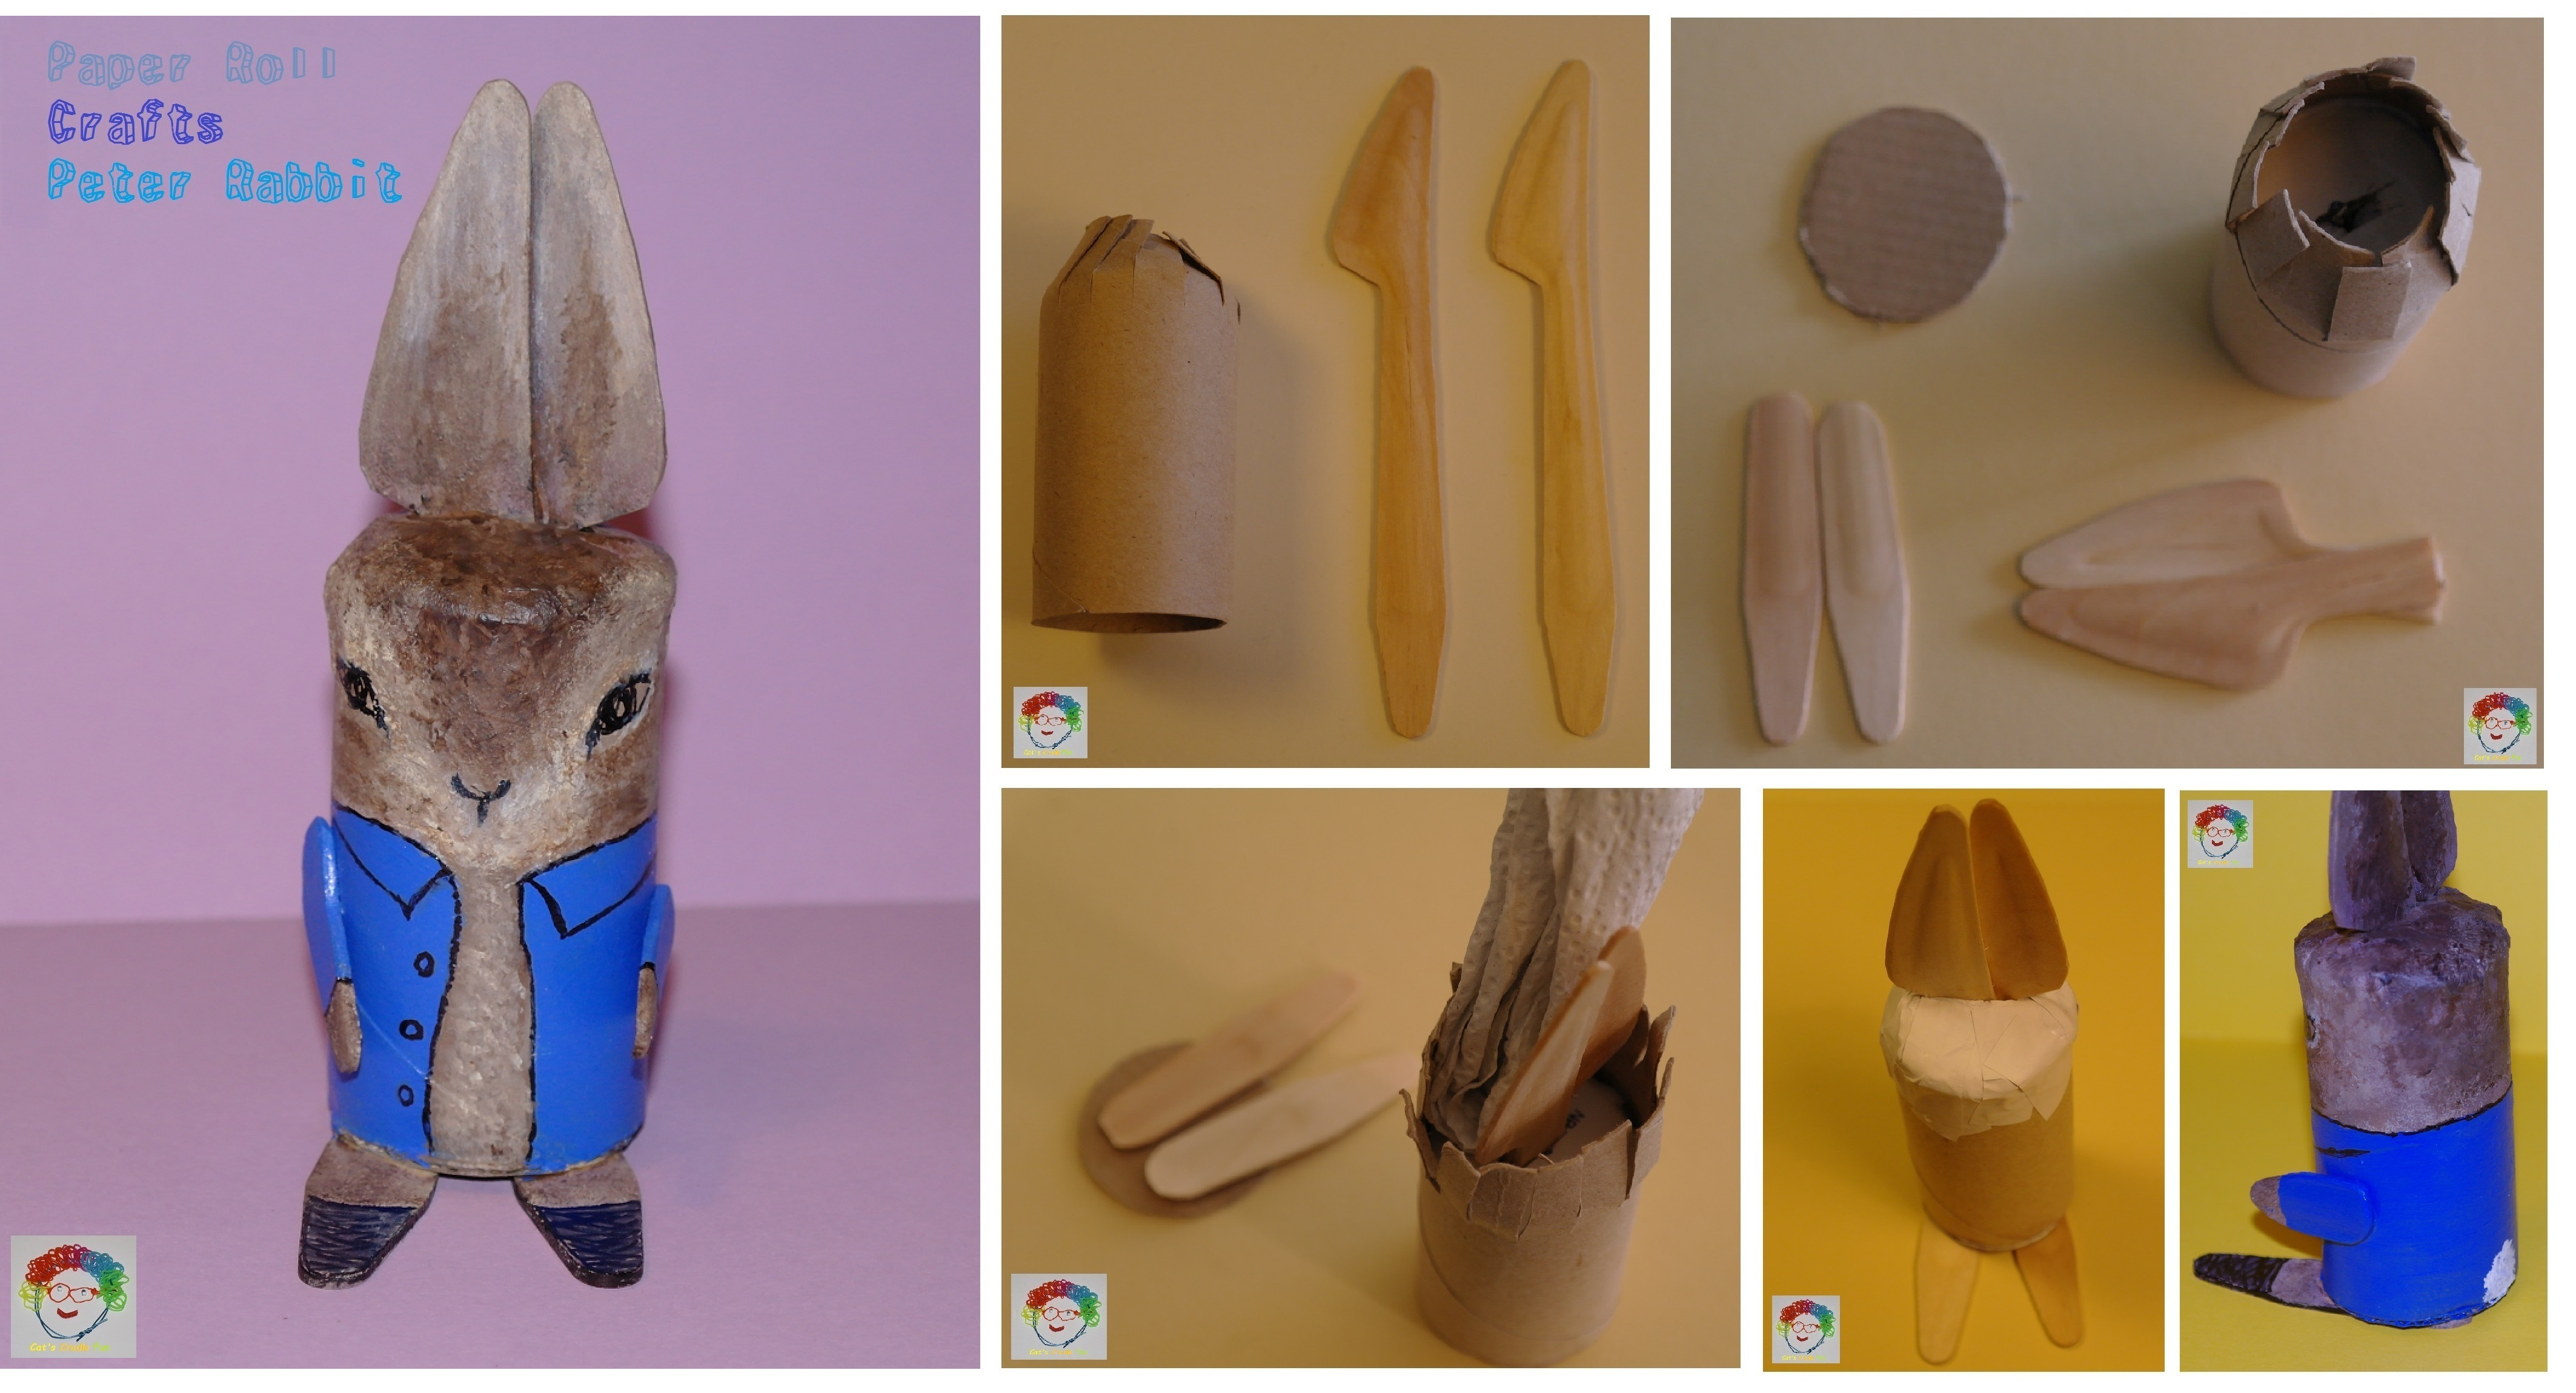 Peter Rabbit Paper Roll Crafts With Wooden Knives